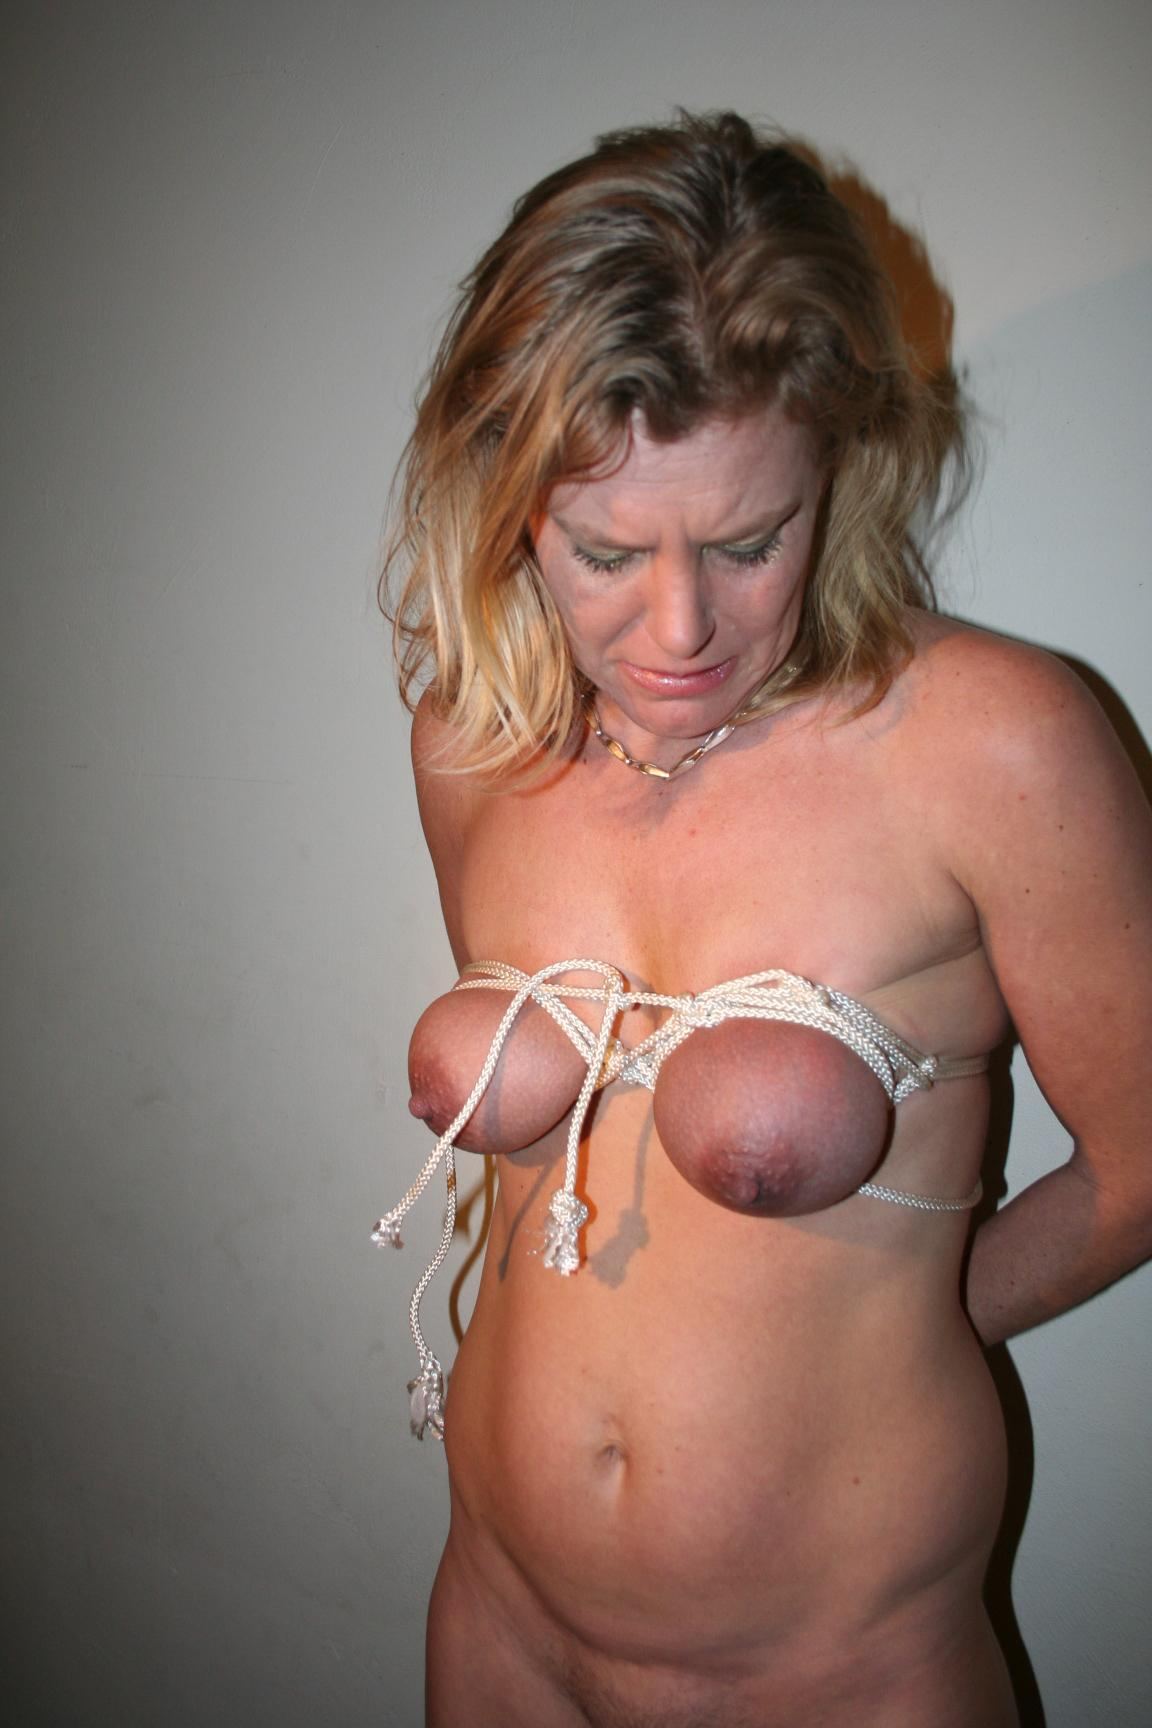 Tied up blonde flogged on the floor 6